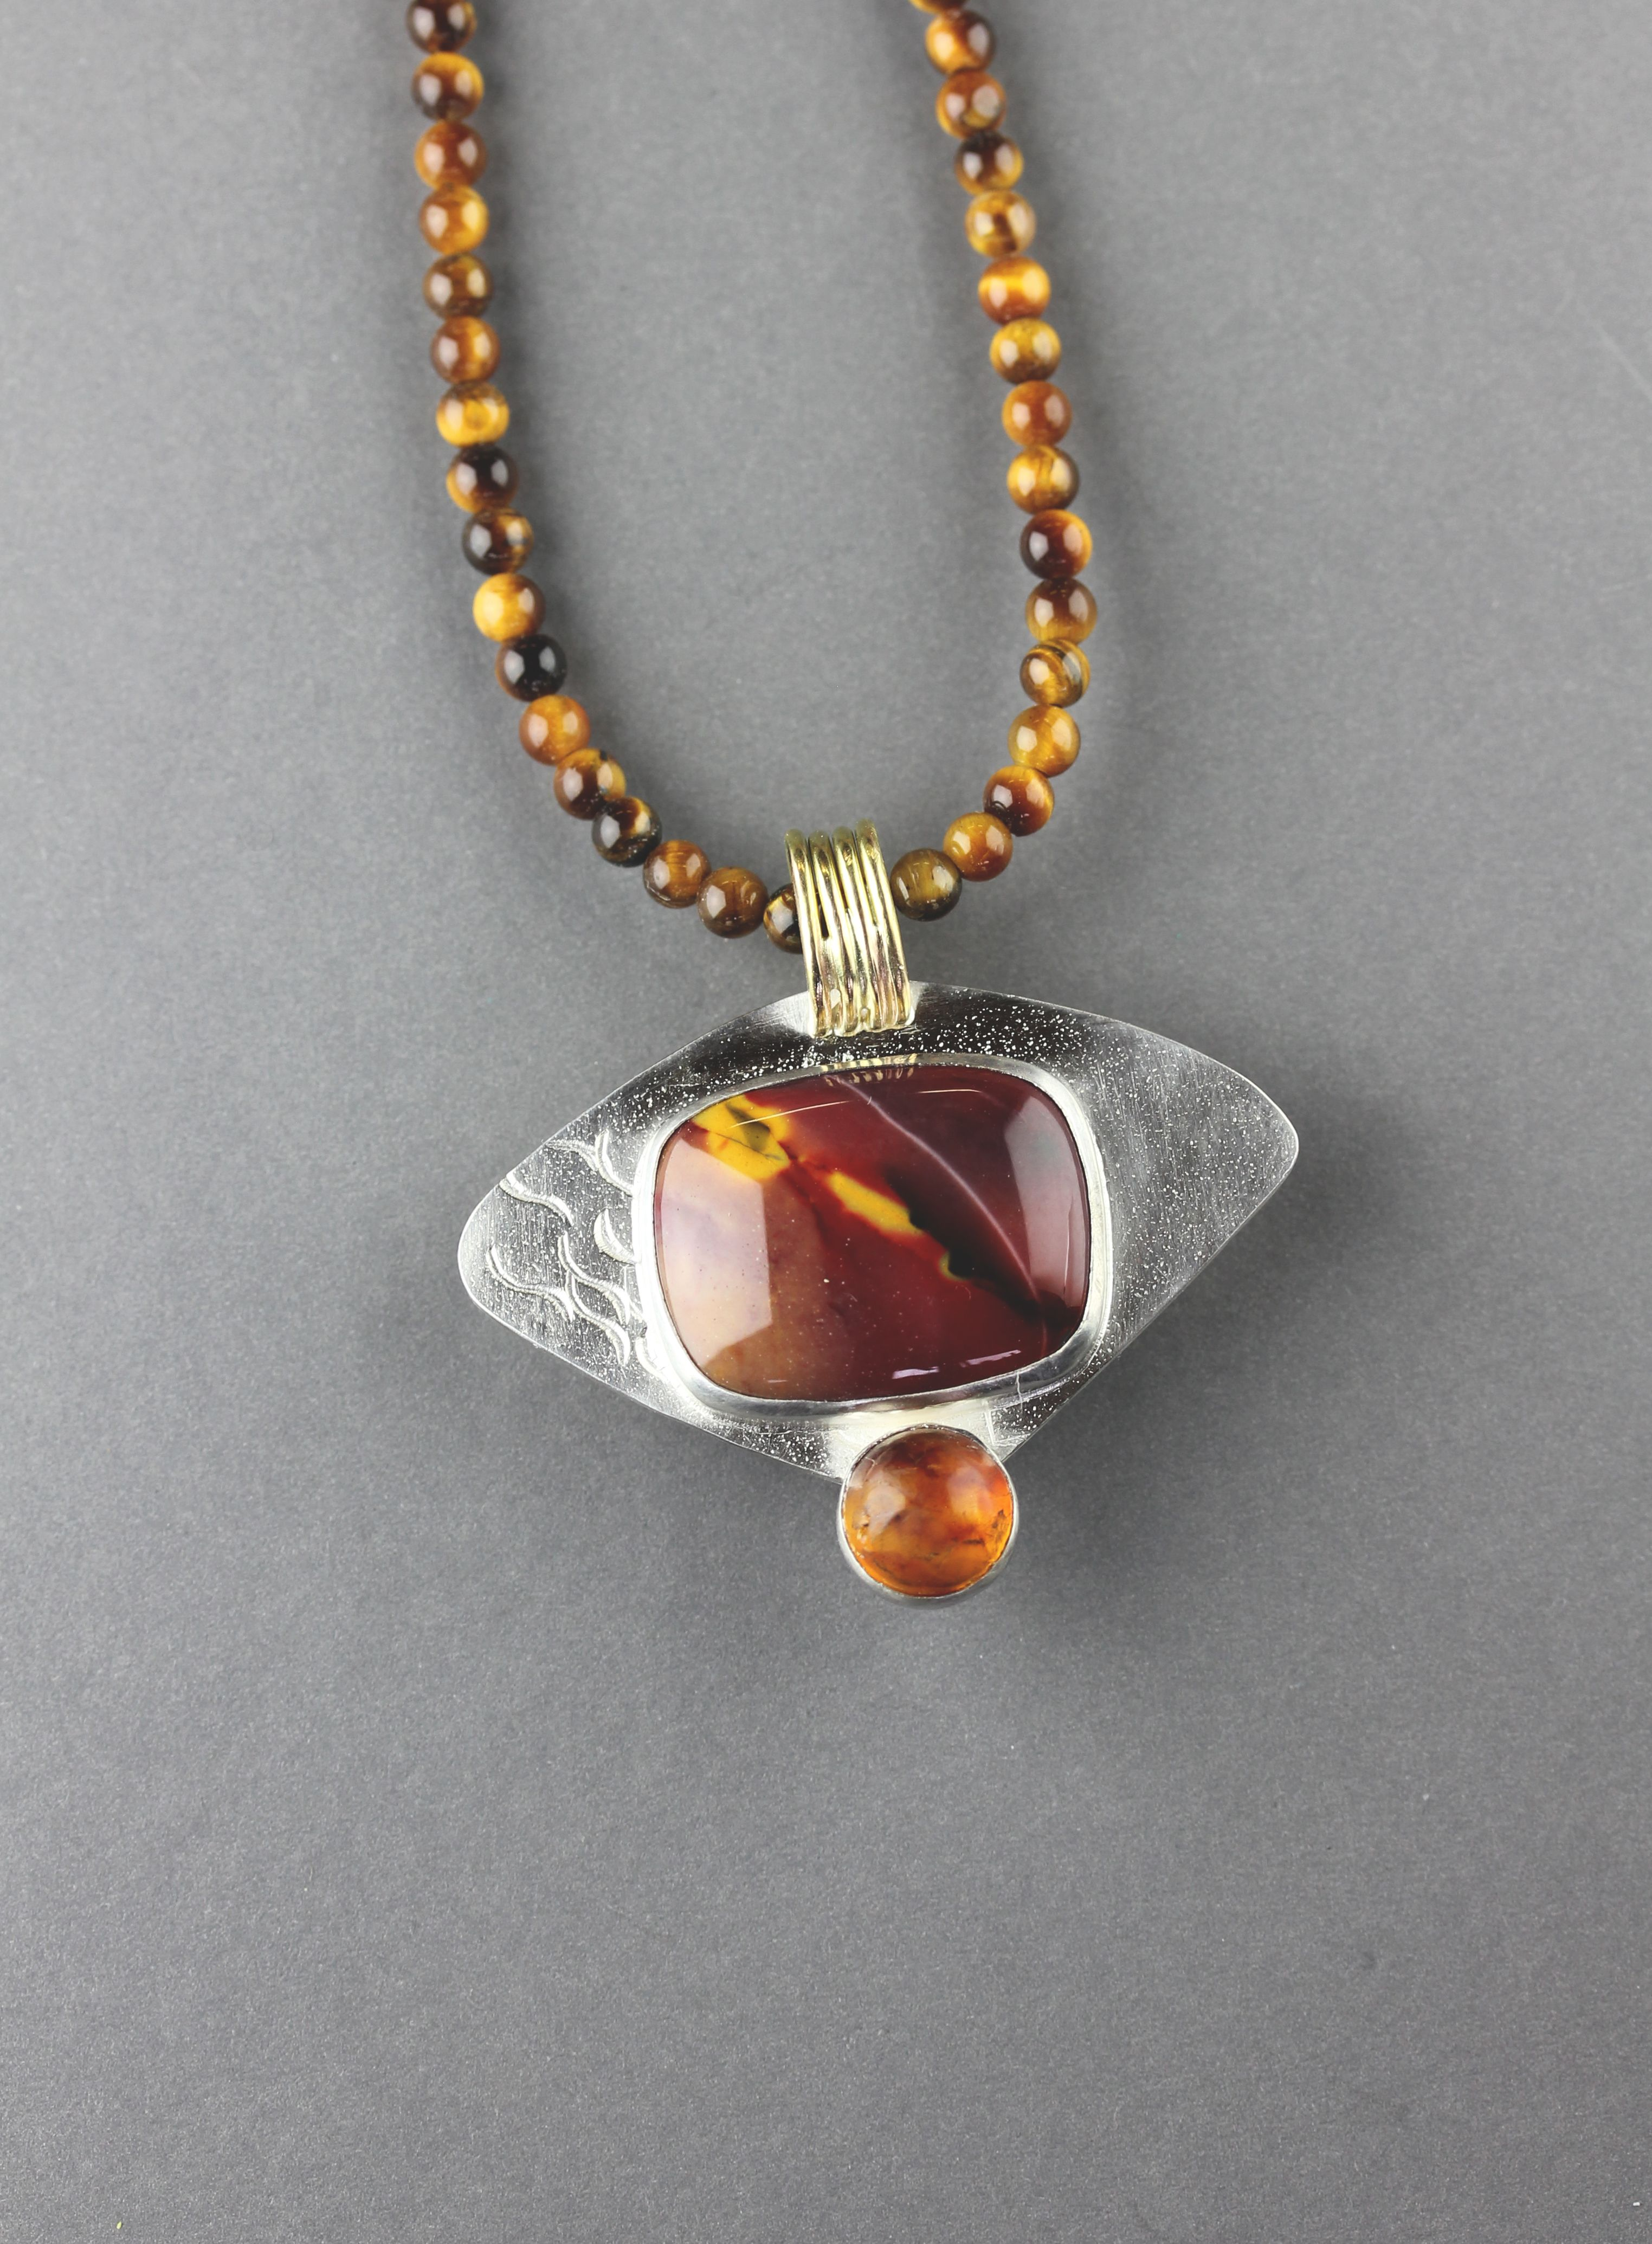 Three way pendant with only the top attached.